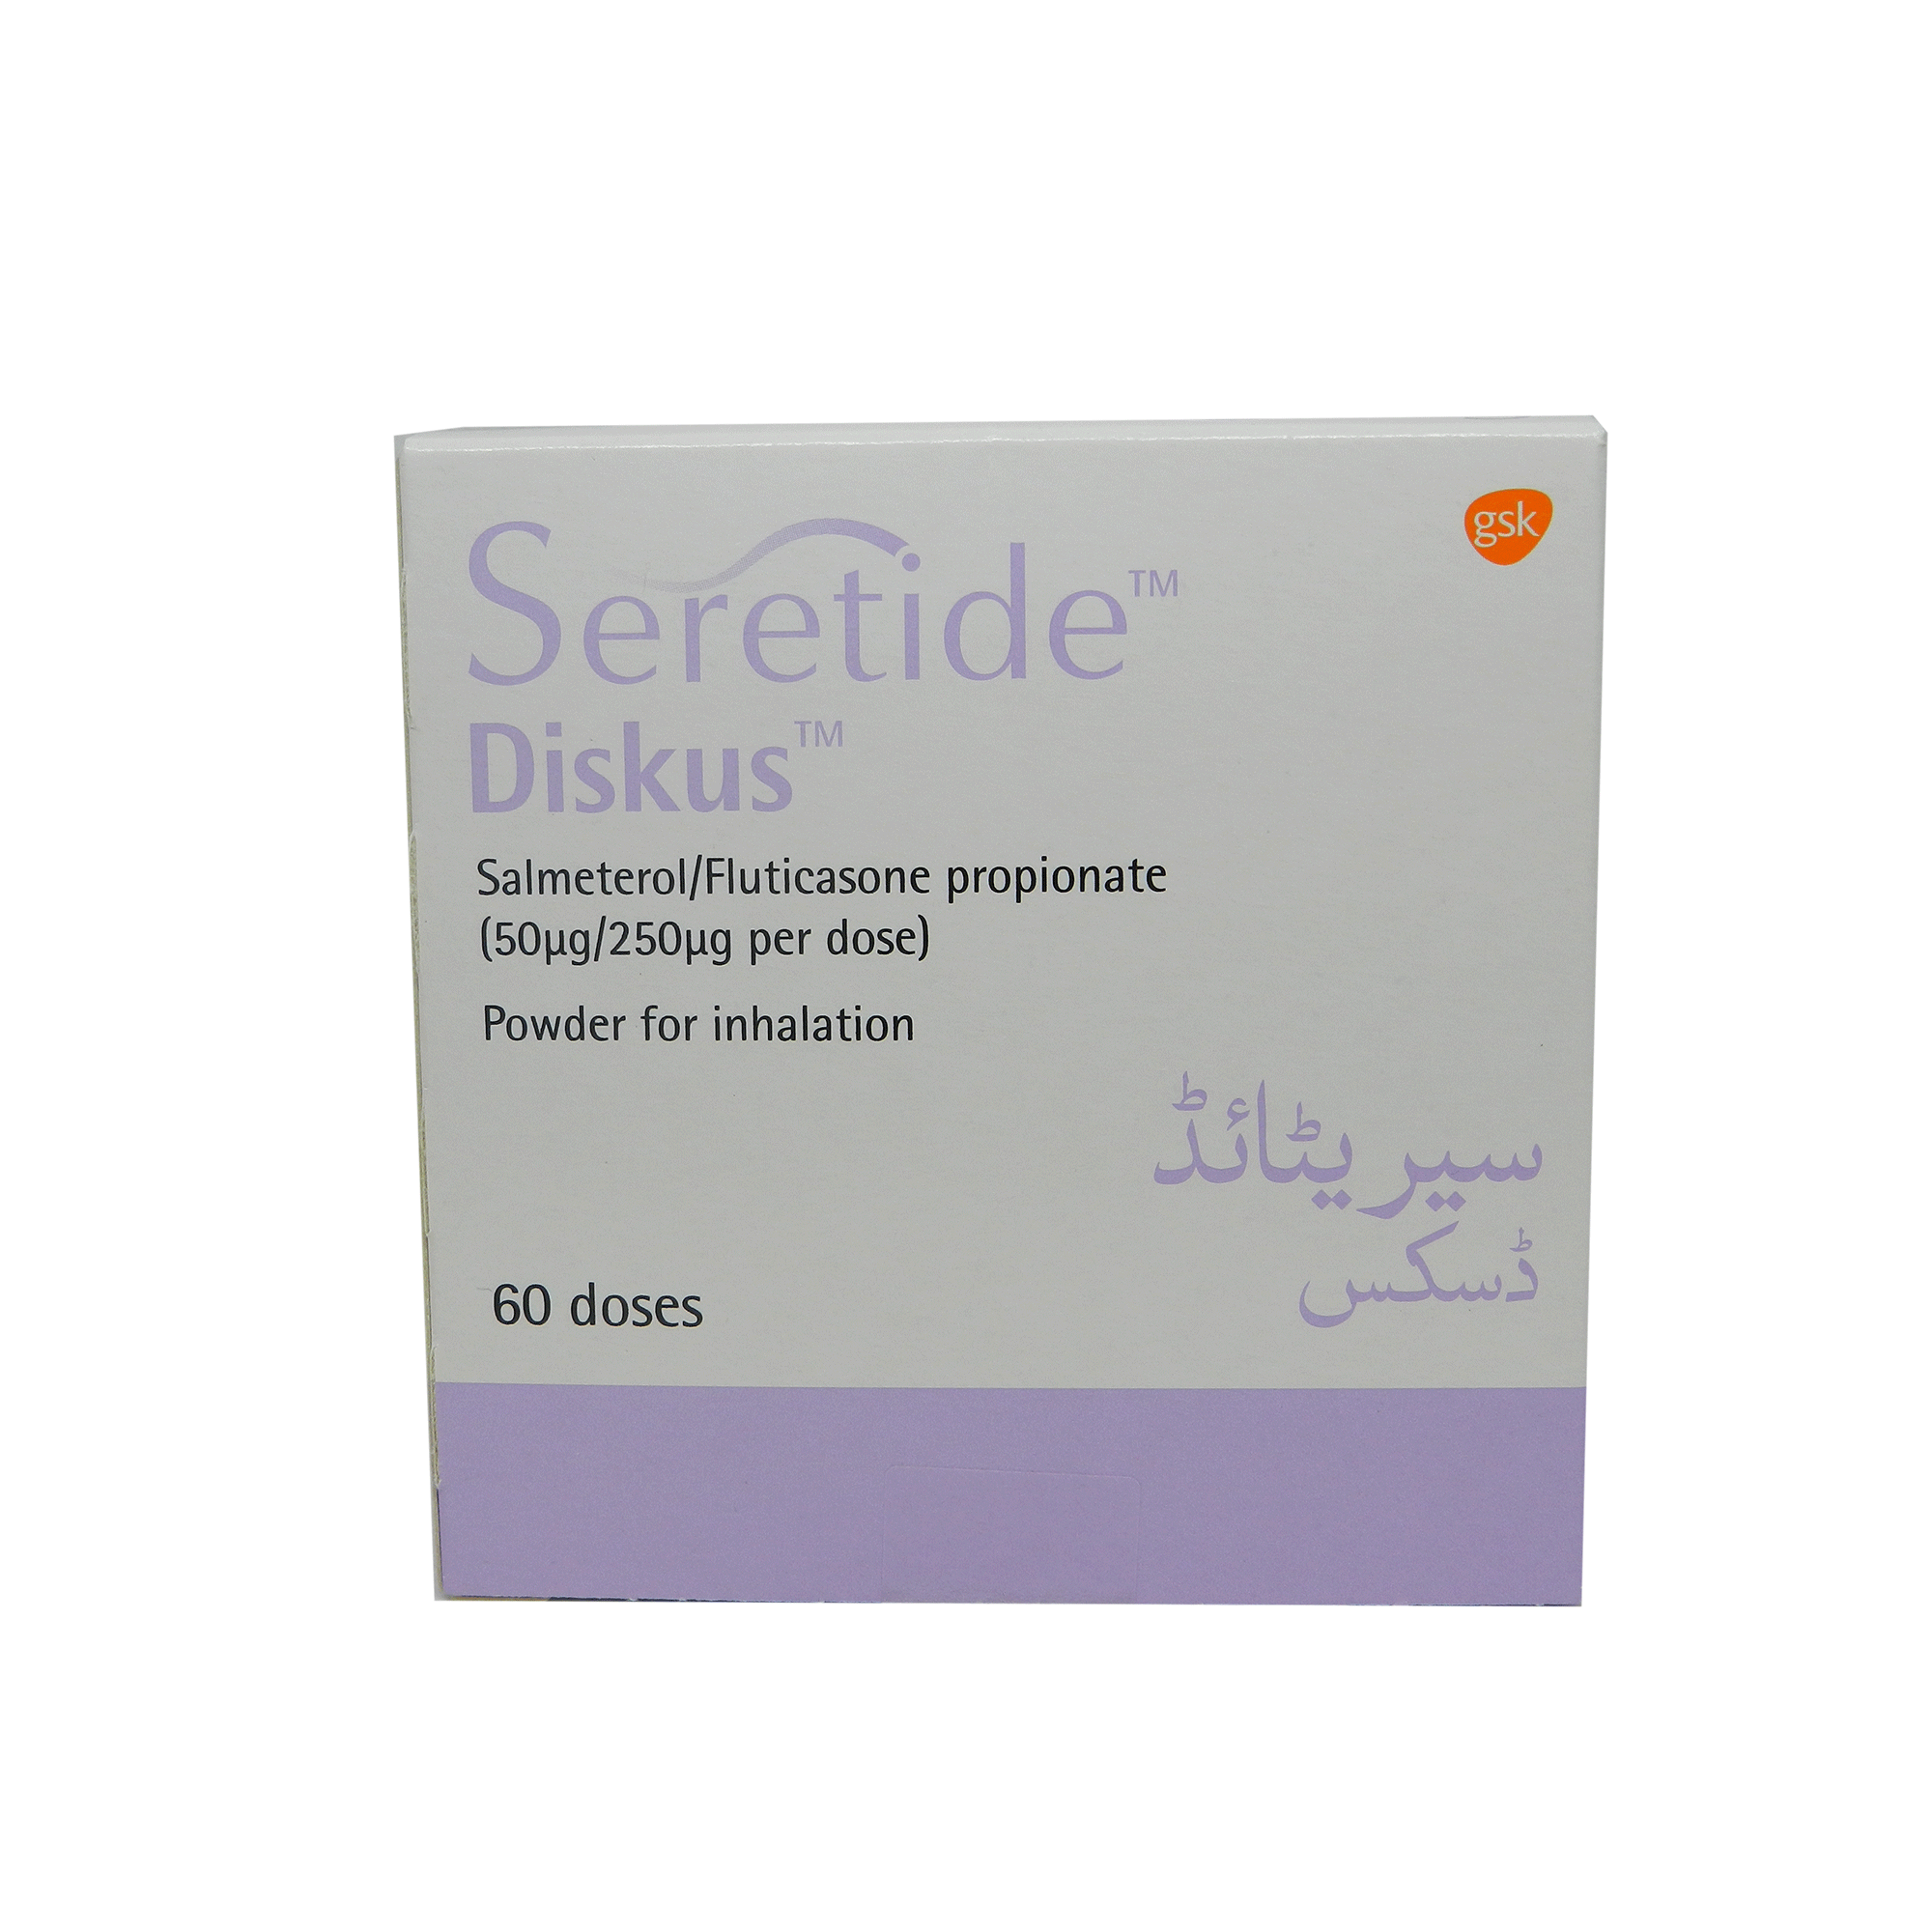 Seretide Diskus 50mg 250mg 60doses Side Effects Price Use Buy Online Next Health Pakistan